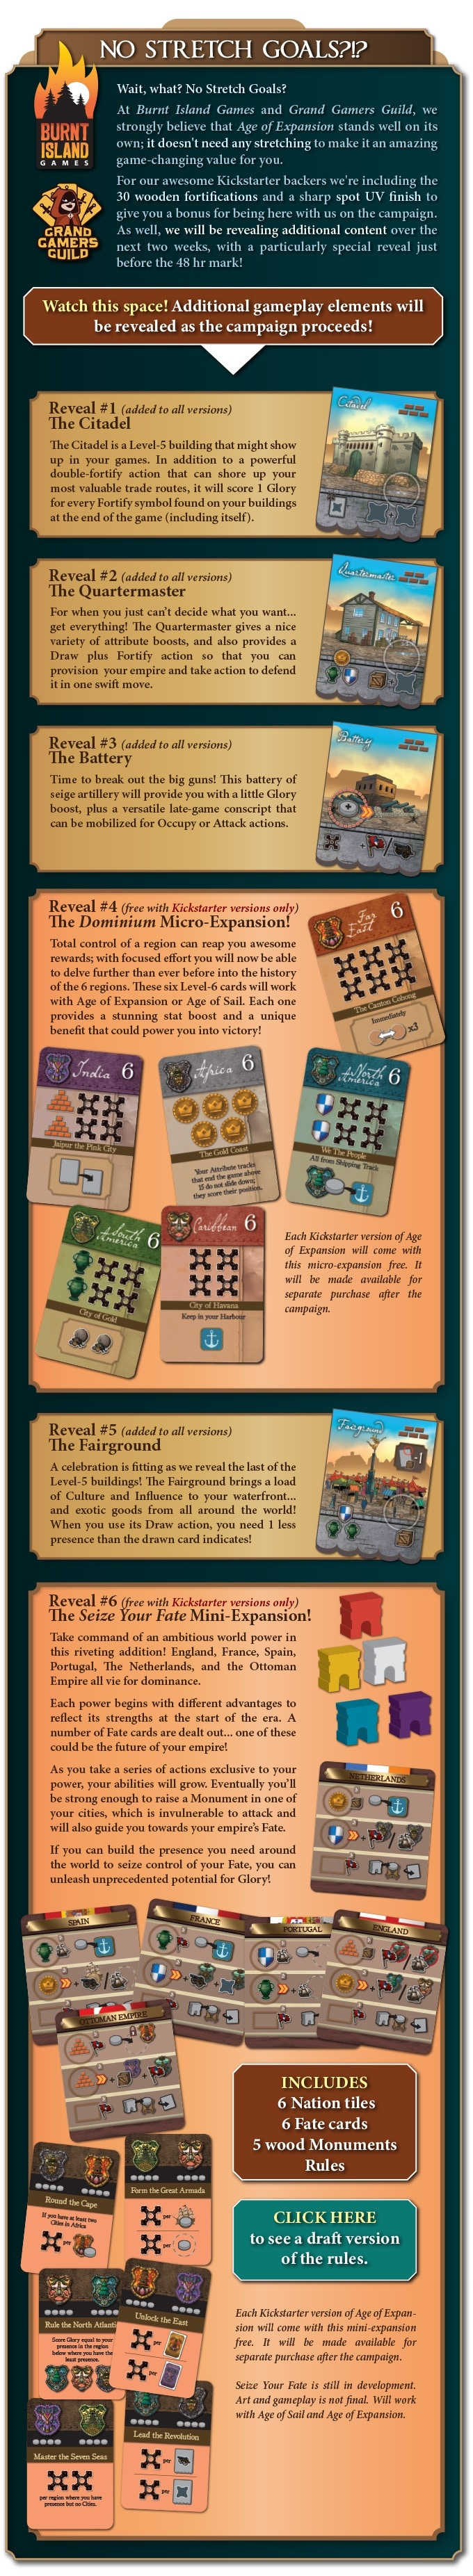 Endeavor: Age of Sail by Burnt Island Games — Kickstarter